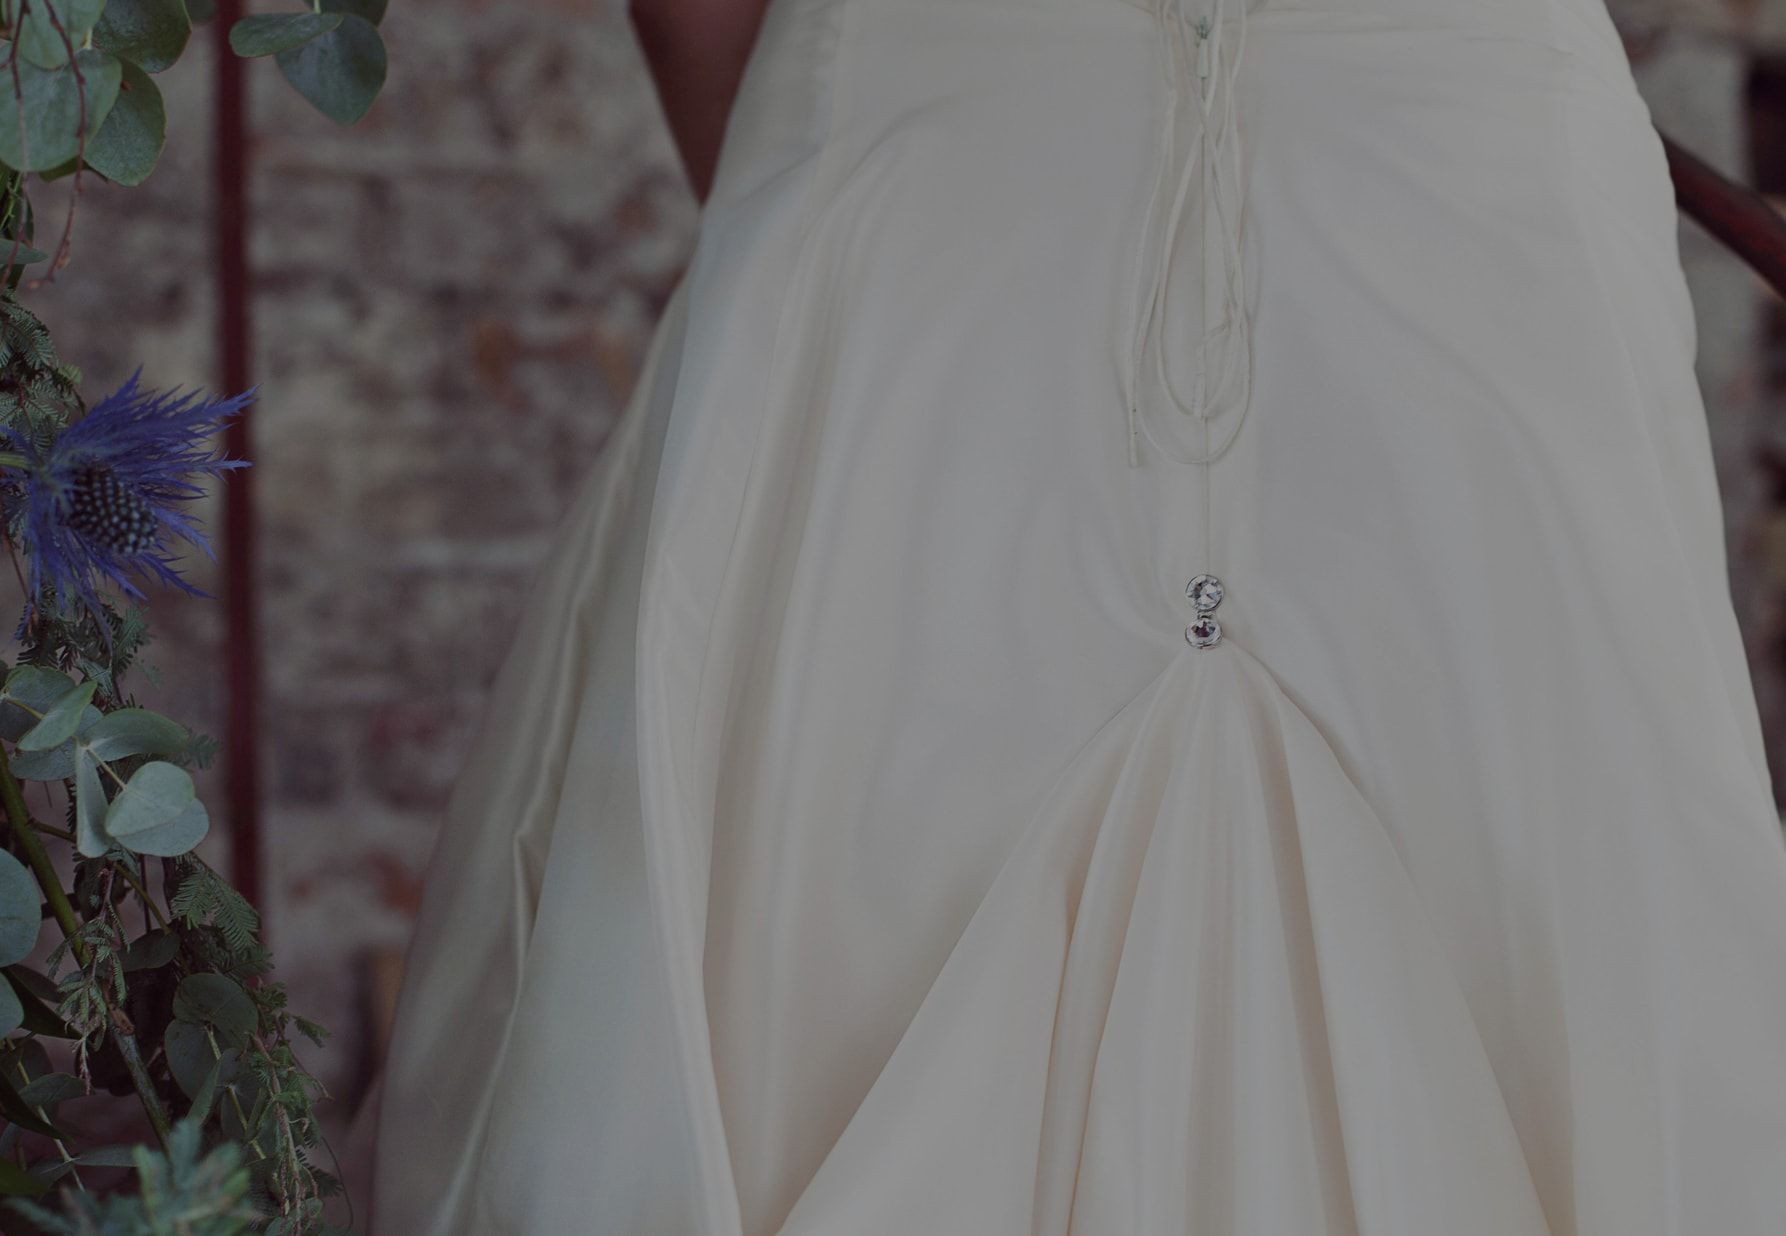 A Revolutionary New Product Allowing You To Hook Your Wedding Dress Train Up With Ease Trainloop Redefines How To Hook Up The Train Of Your Wedding Dress